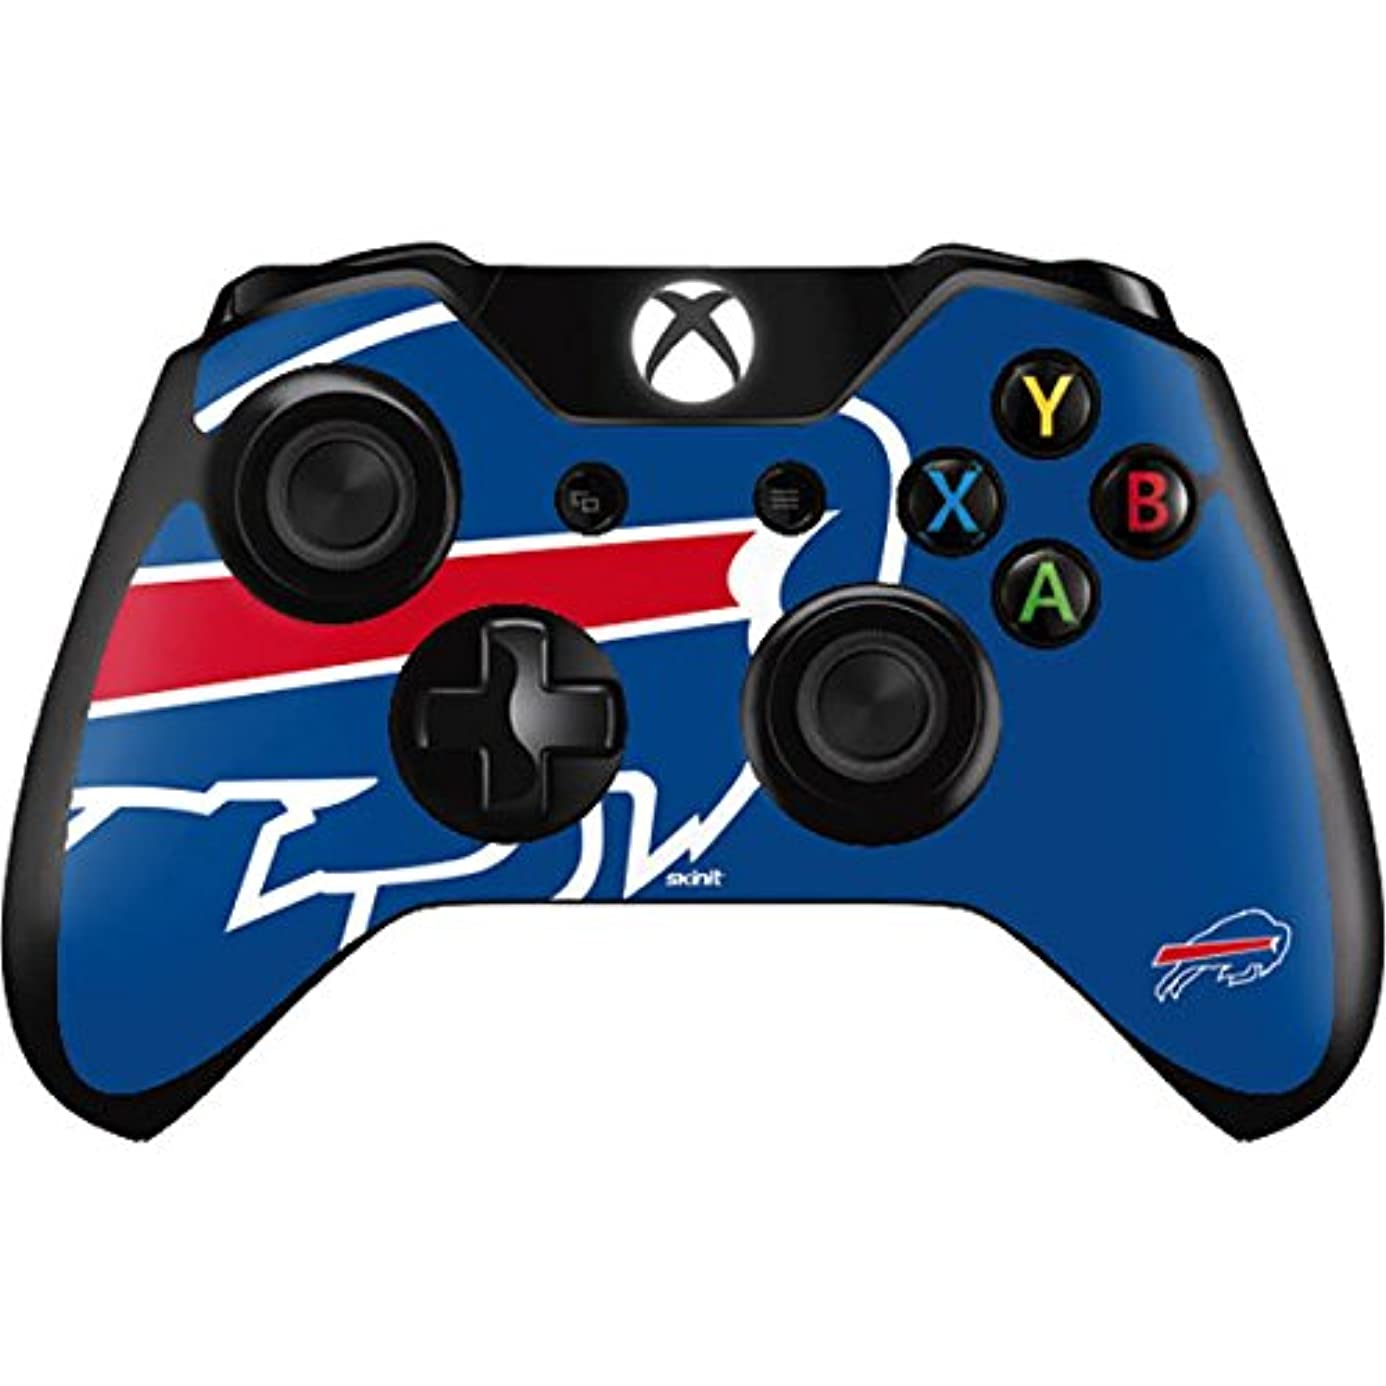 Skinit Buffalo Bills Large Logo Xbox One Controller Skin - Officially Licensed NFL Gaming Decal - Ultra Thin, Lightweight Vinyl Decal Protection